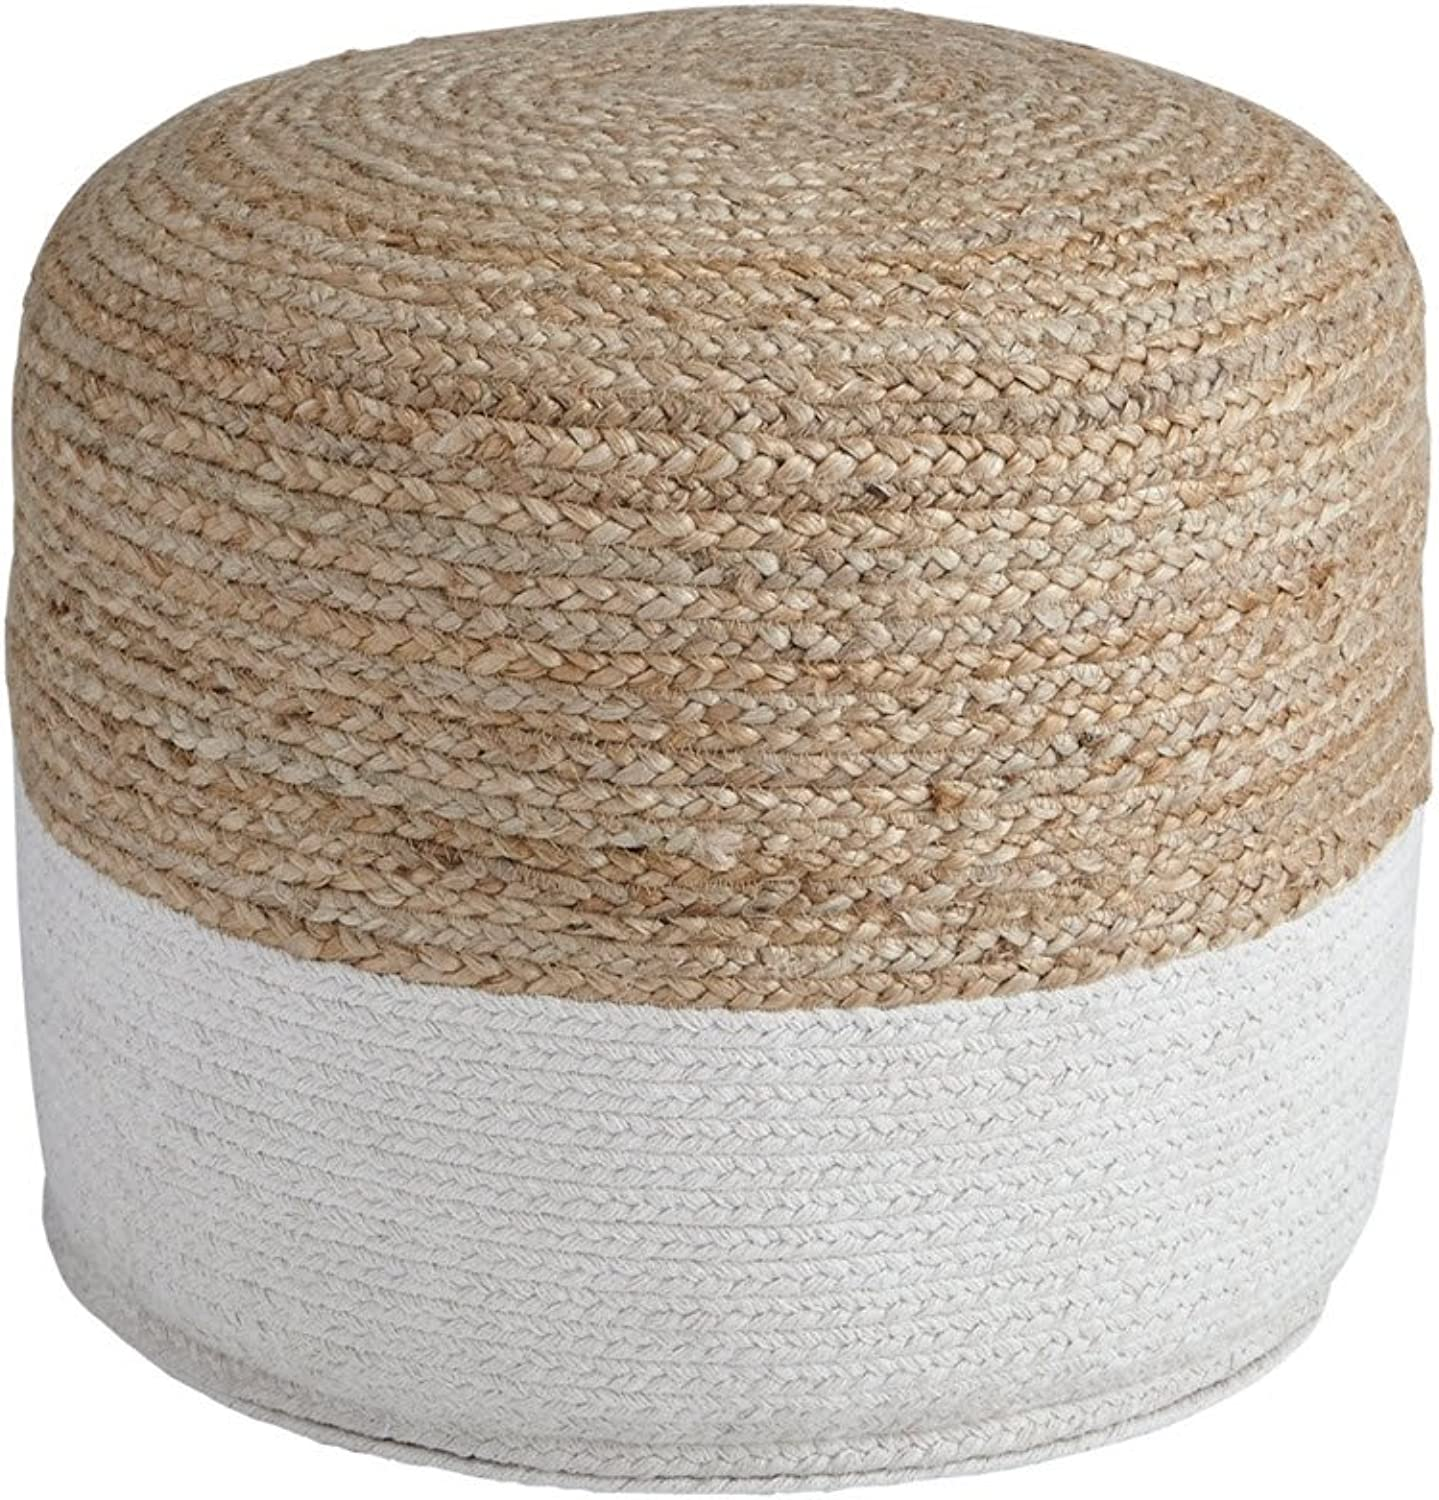 Signature Design by Ashley A1000420 Pouf, Natural White